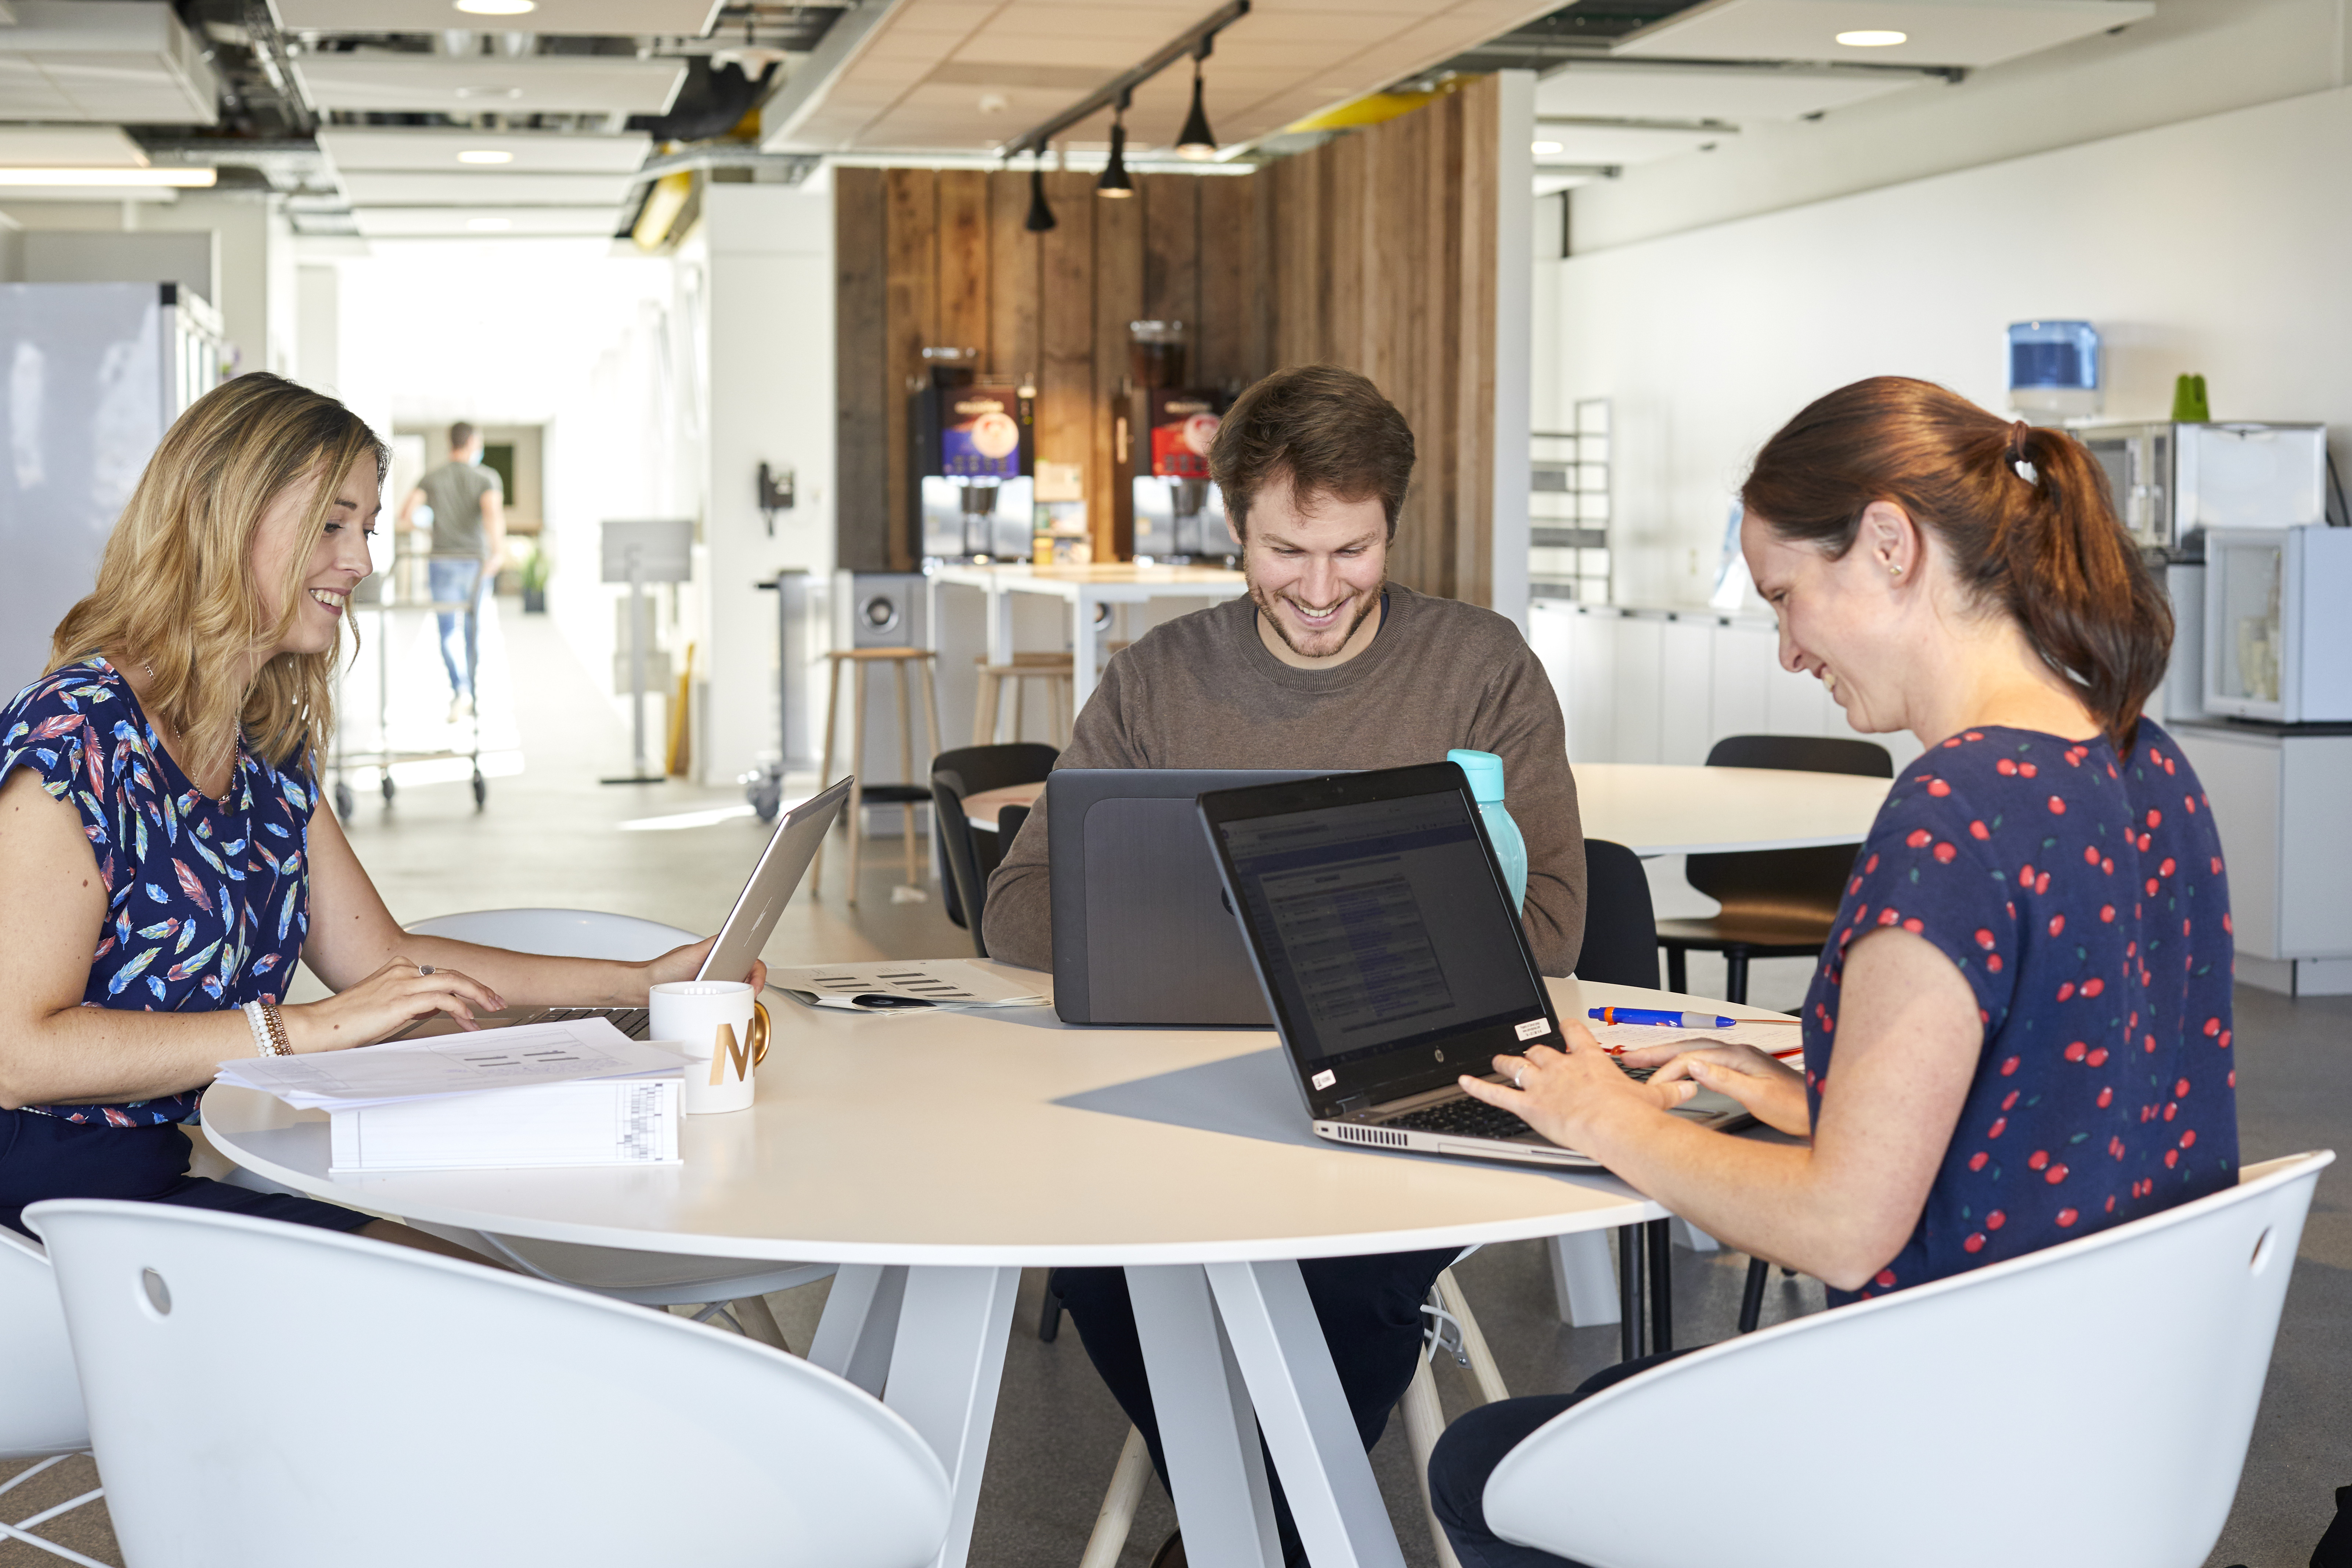 Colruyt Group employees working in the office